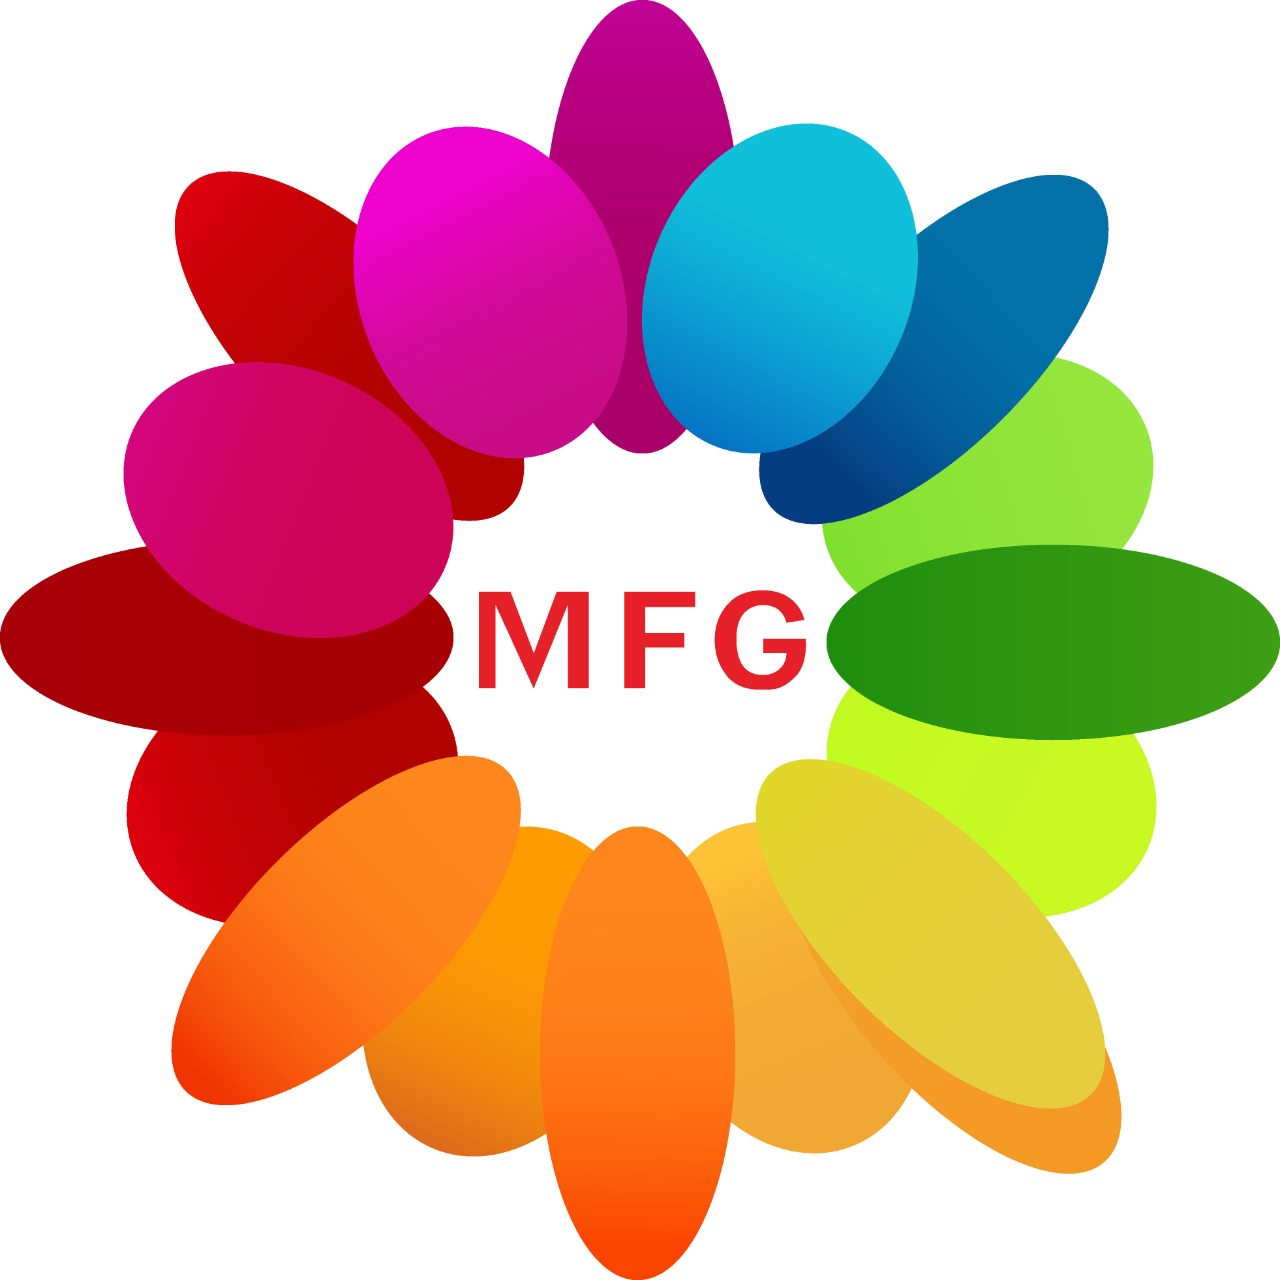 chocolate truffle 1 kg fresh cream premium quality cake(Eggless)